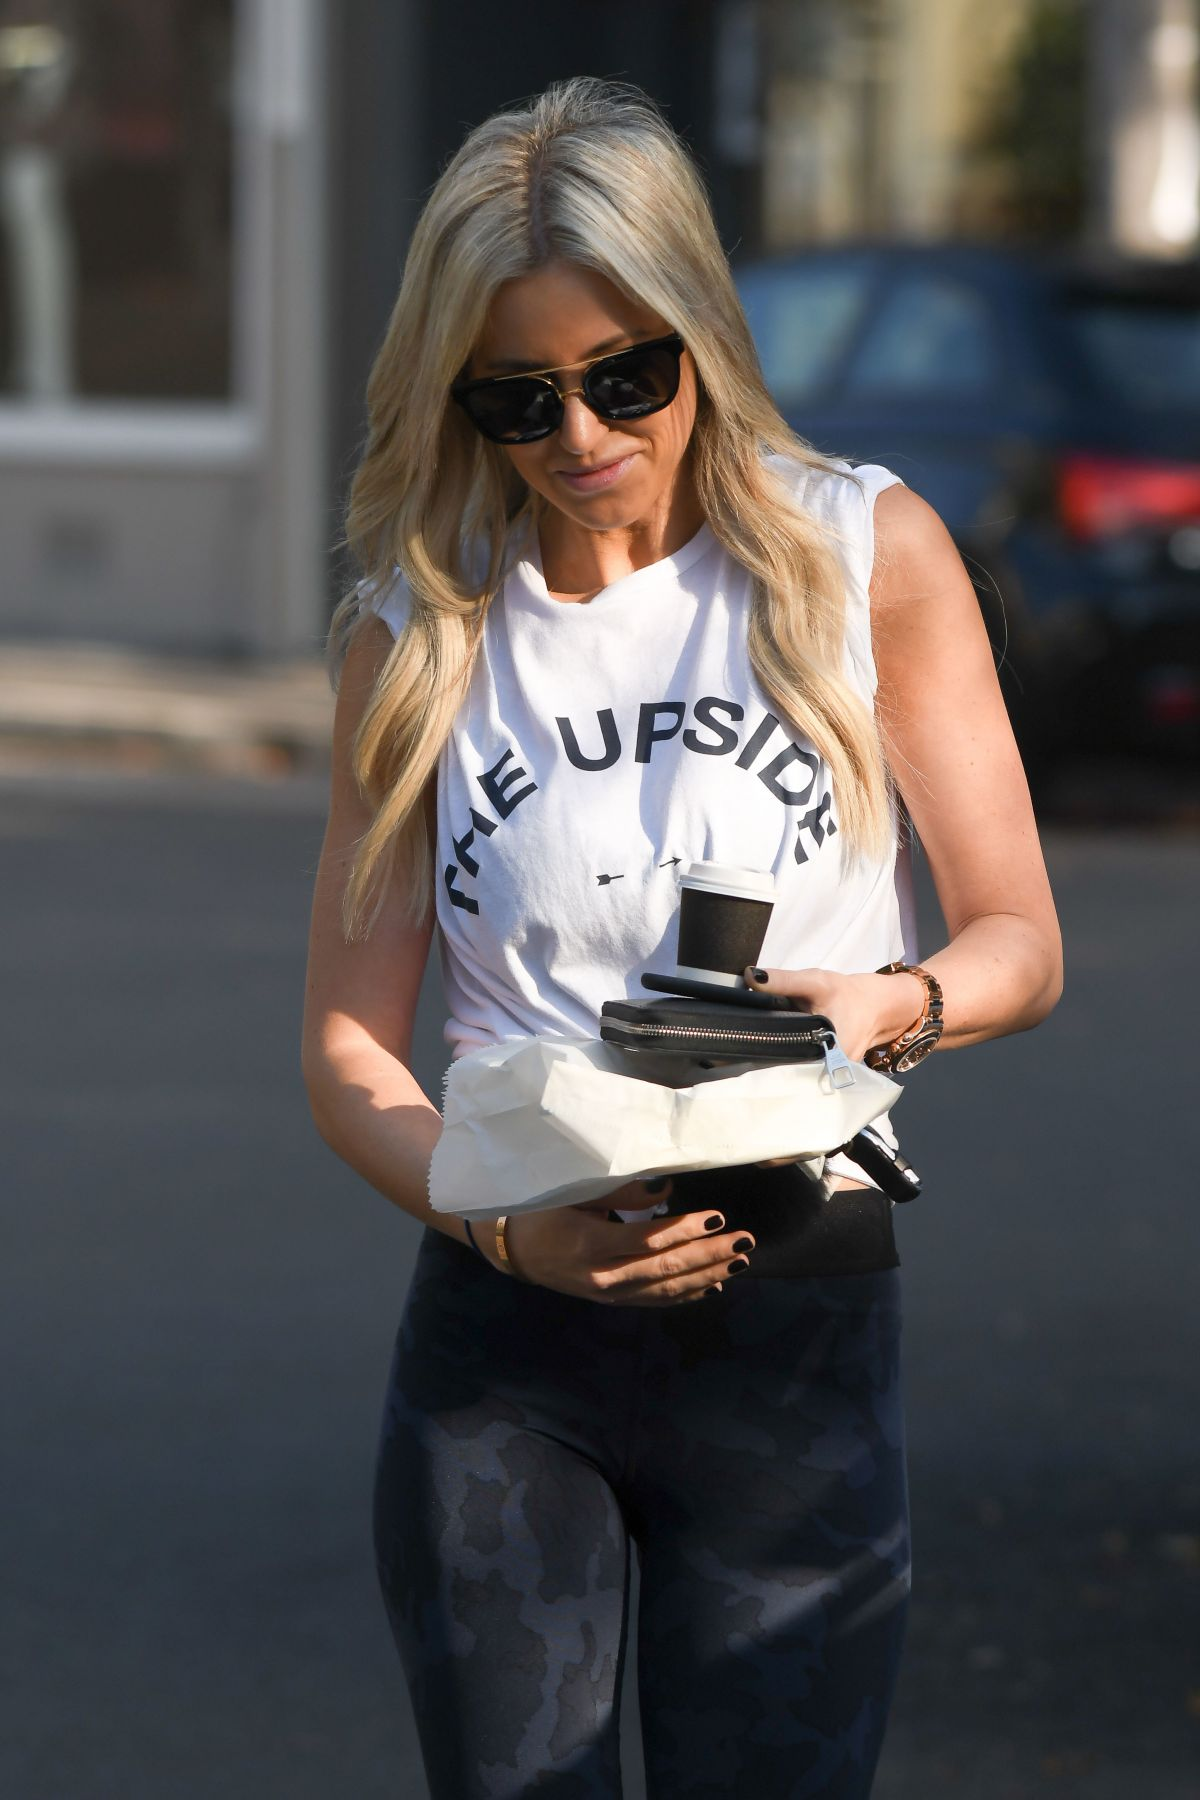 roxy jacenko out and about in sydney 05 23 2017   hawtcelebs   hawtcelebs